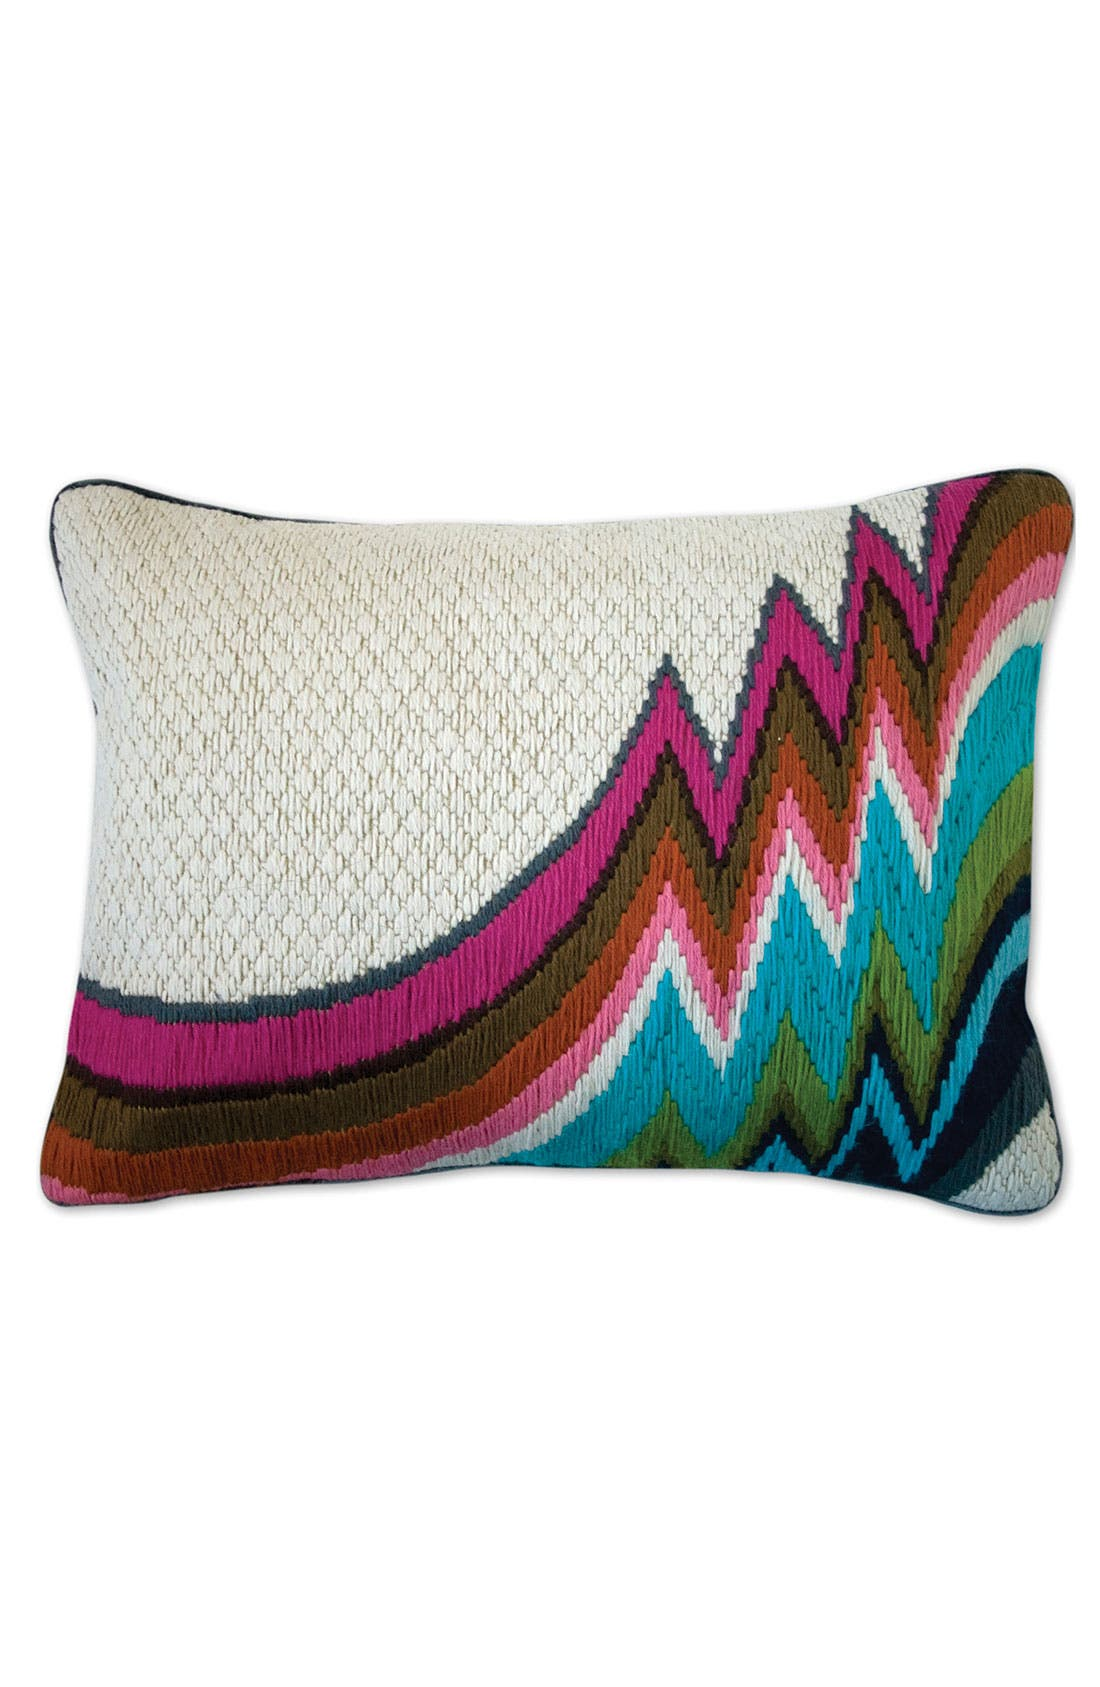 Main Image - Jonathan Adler 'Jamaica Lane Bargello' Pillow